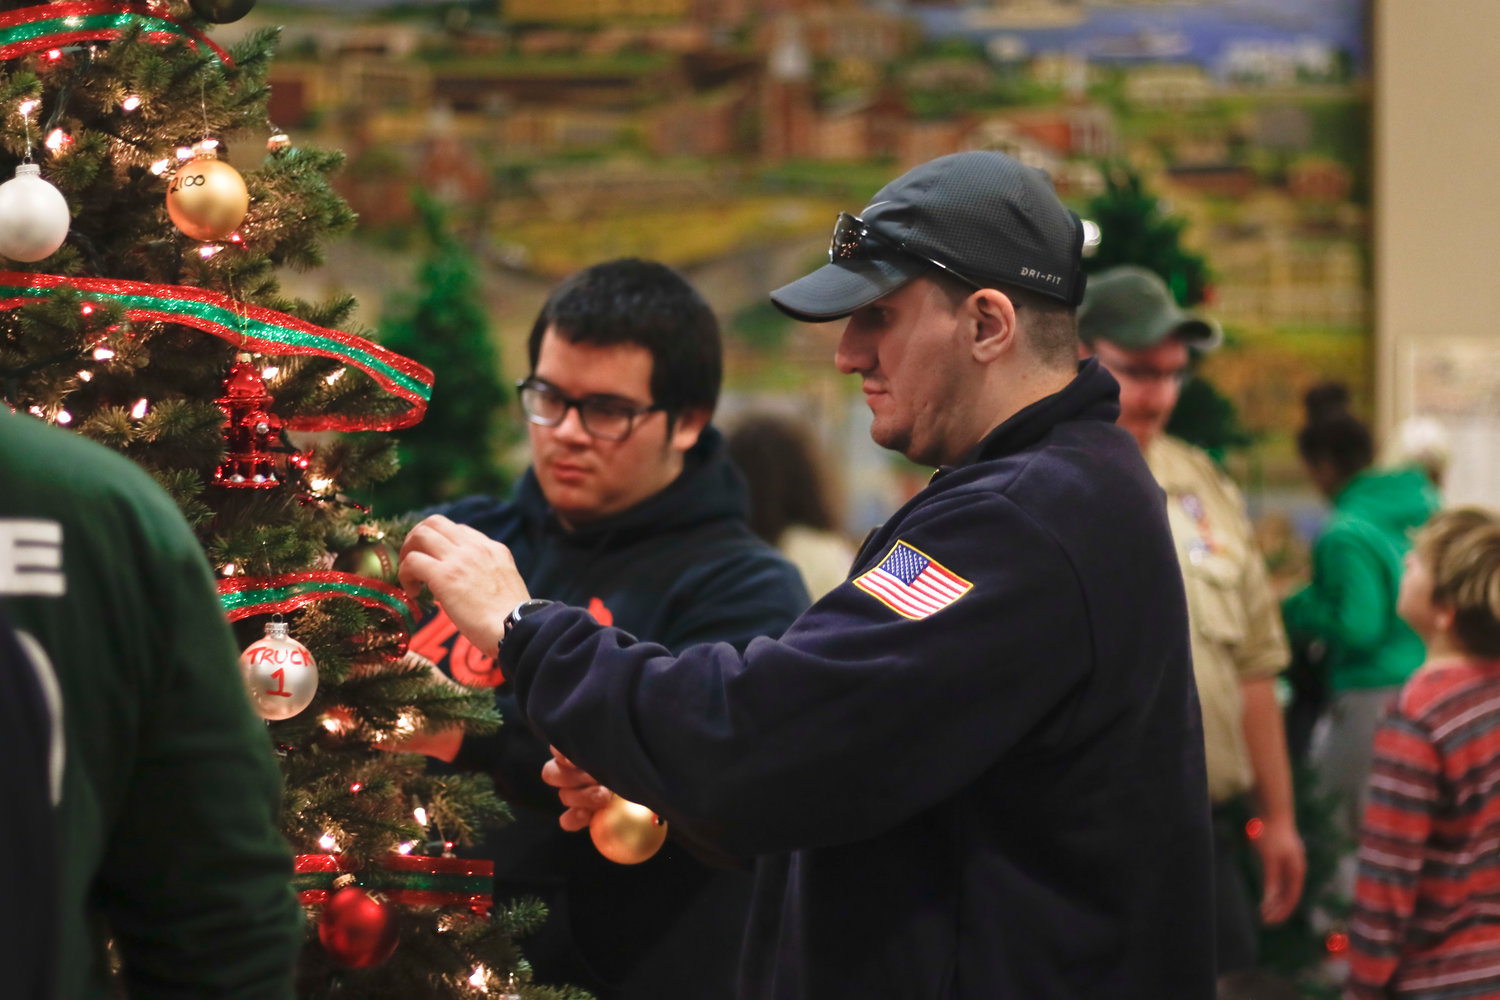 Freeport Fire Department members decorated their tree with lights, ribbons and personalized ornaments. Fire fighter Albeiro Gonzalez, from Vigilant Hose Company No. 2, worked added ornaments to the tree.